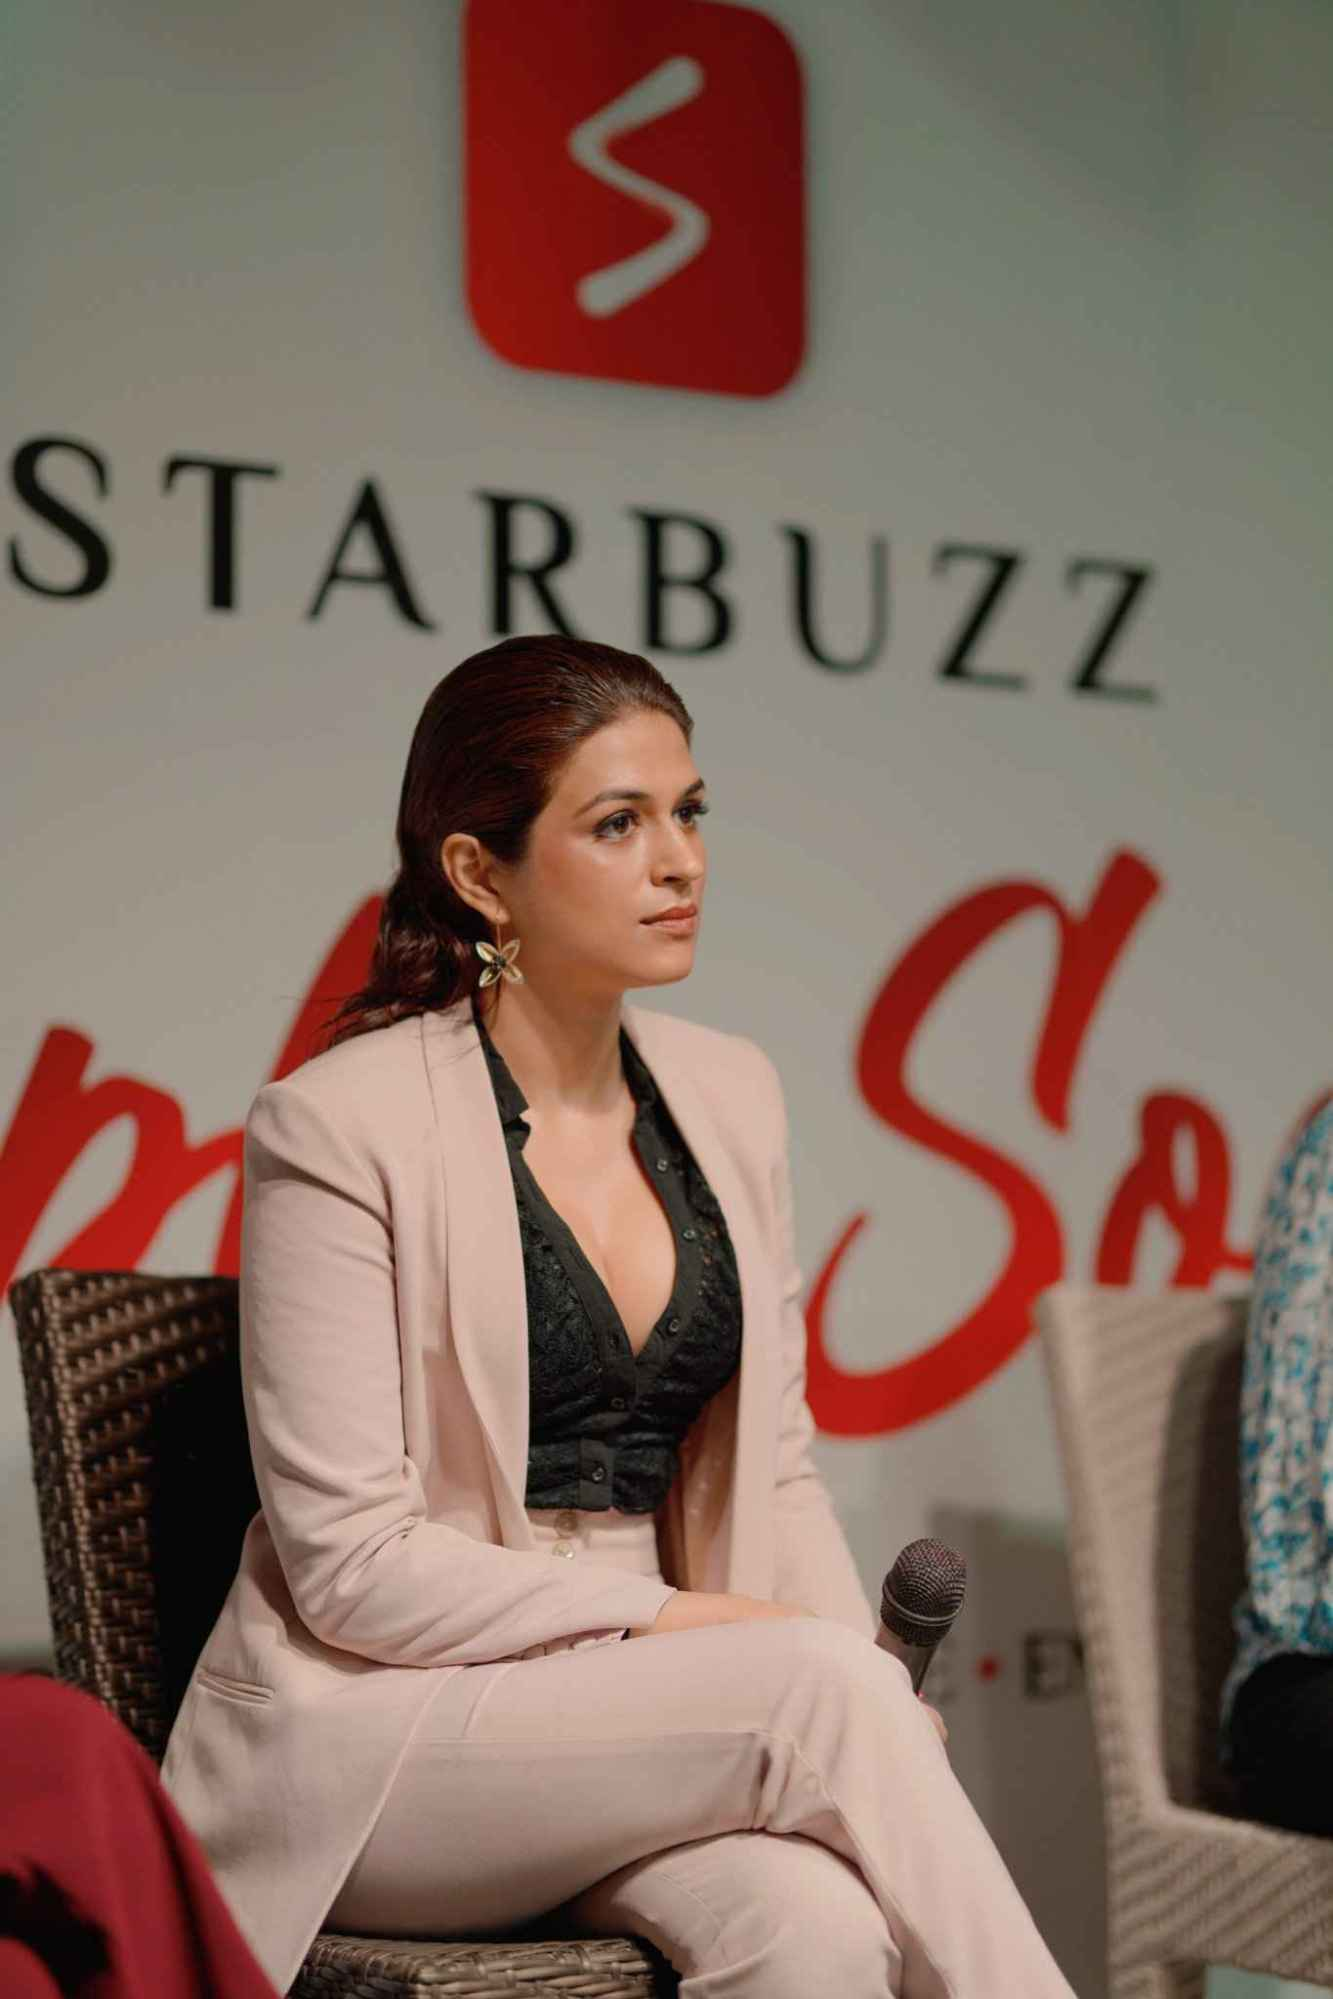 Actress Shraddha das Launched the Star Buzz app last week in Hyderabad